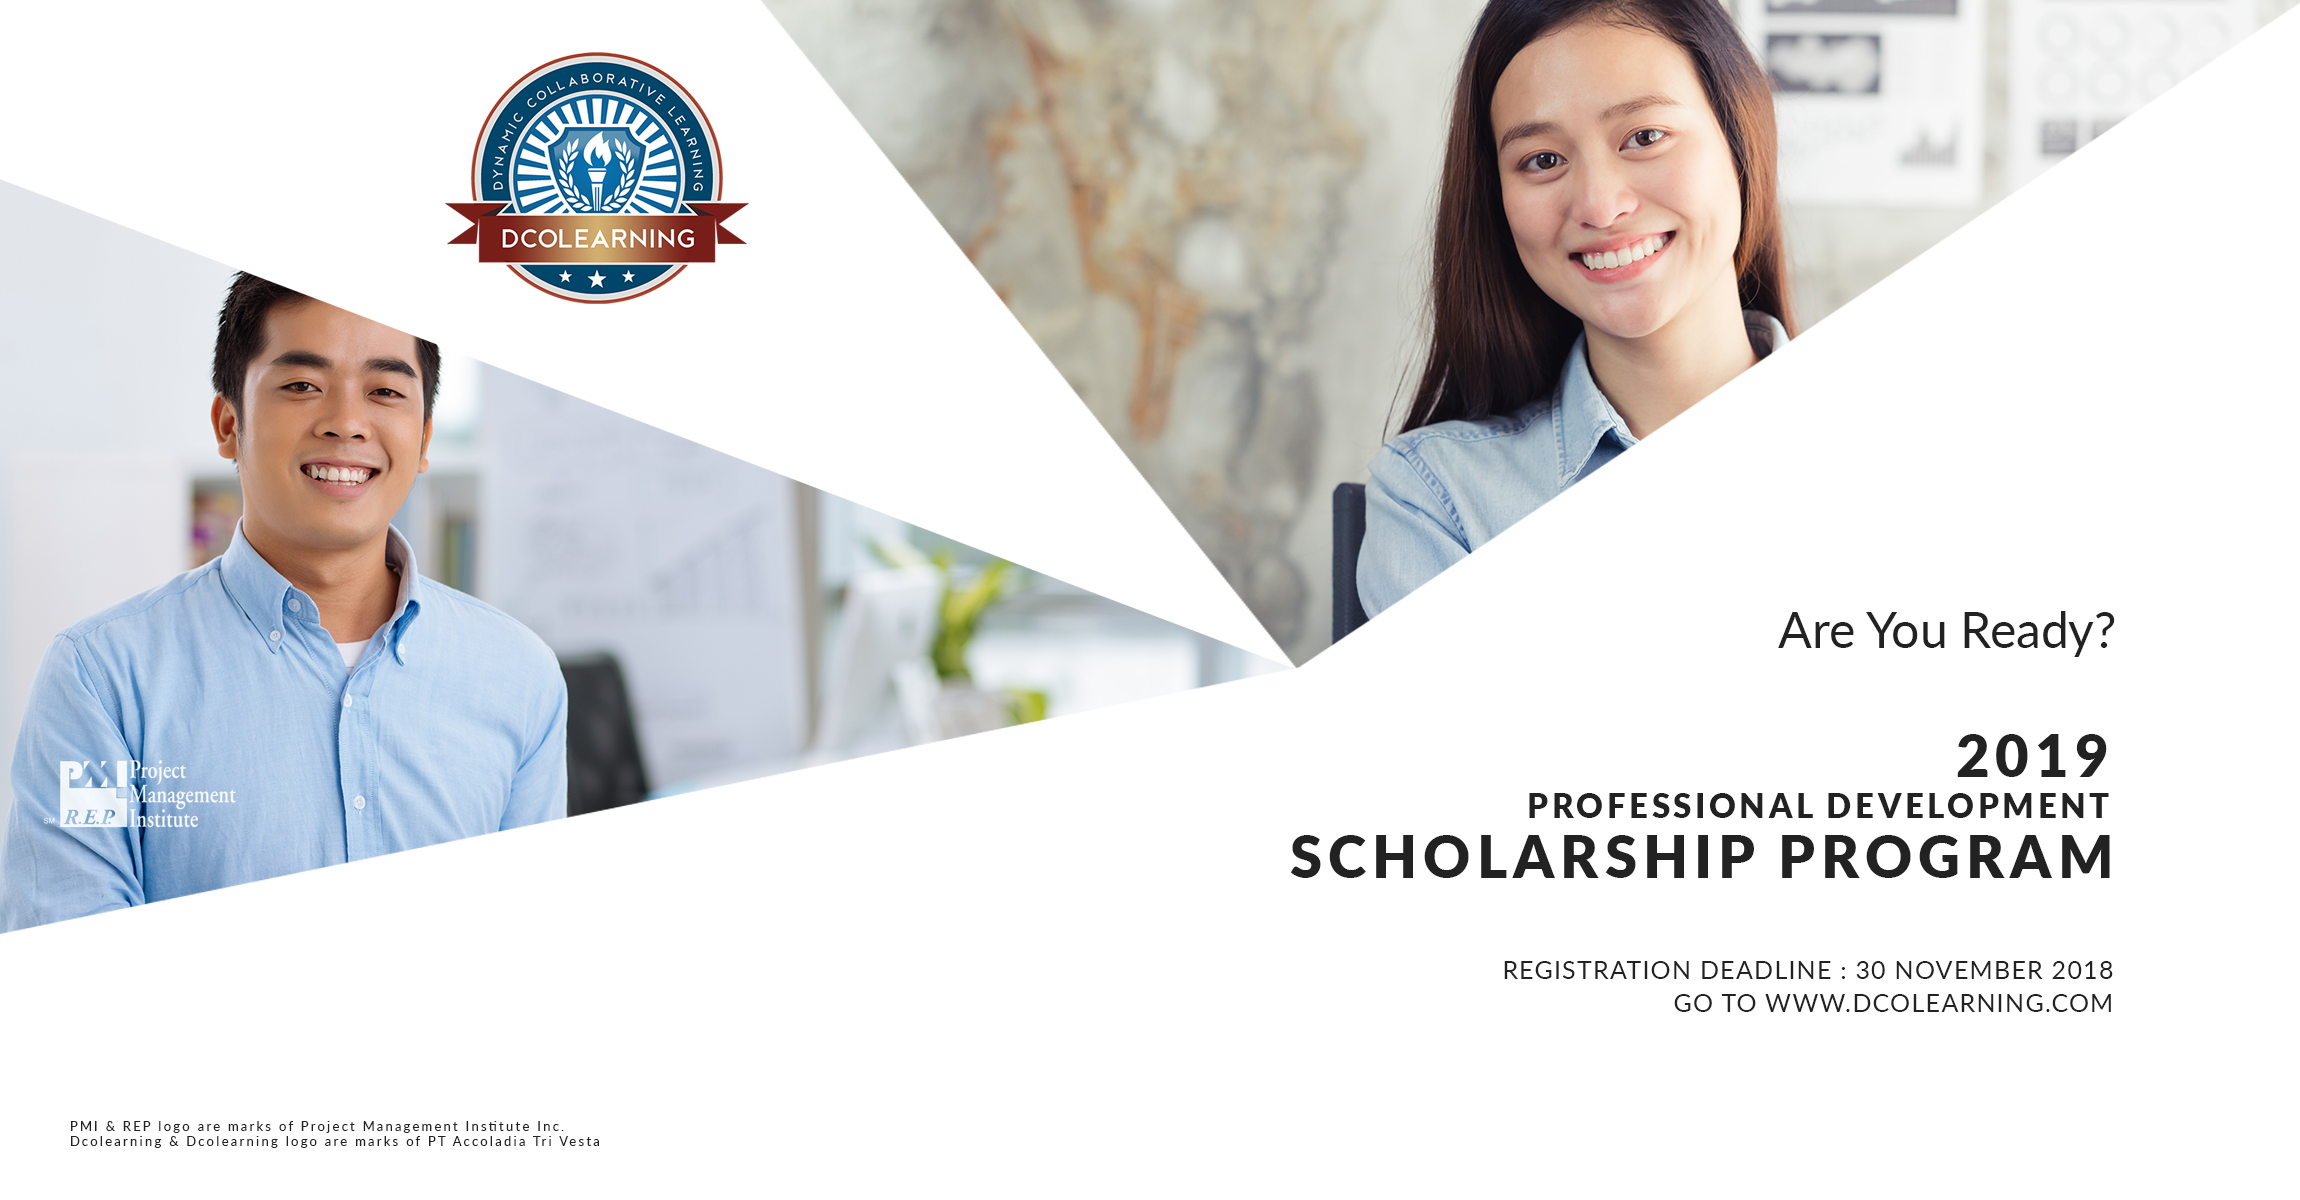 2019 PM PROFESSIONAL DEVELOPMENT SCHOLARSHIP BY DCOLEARNING